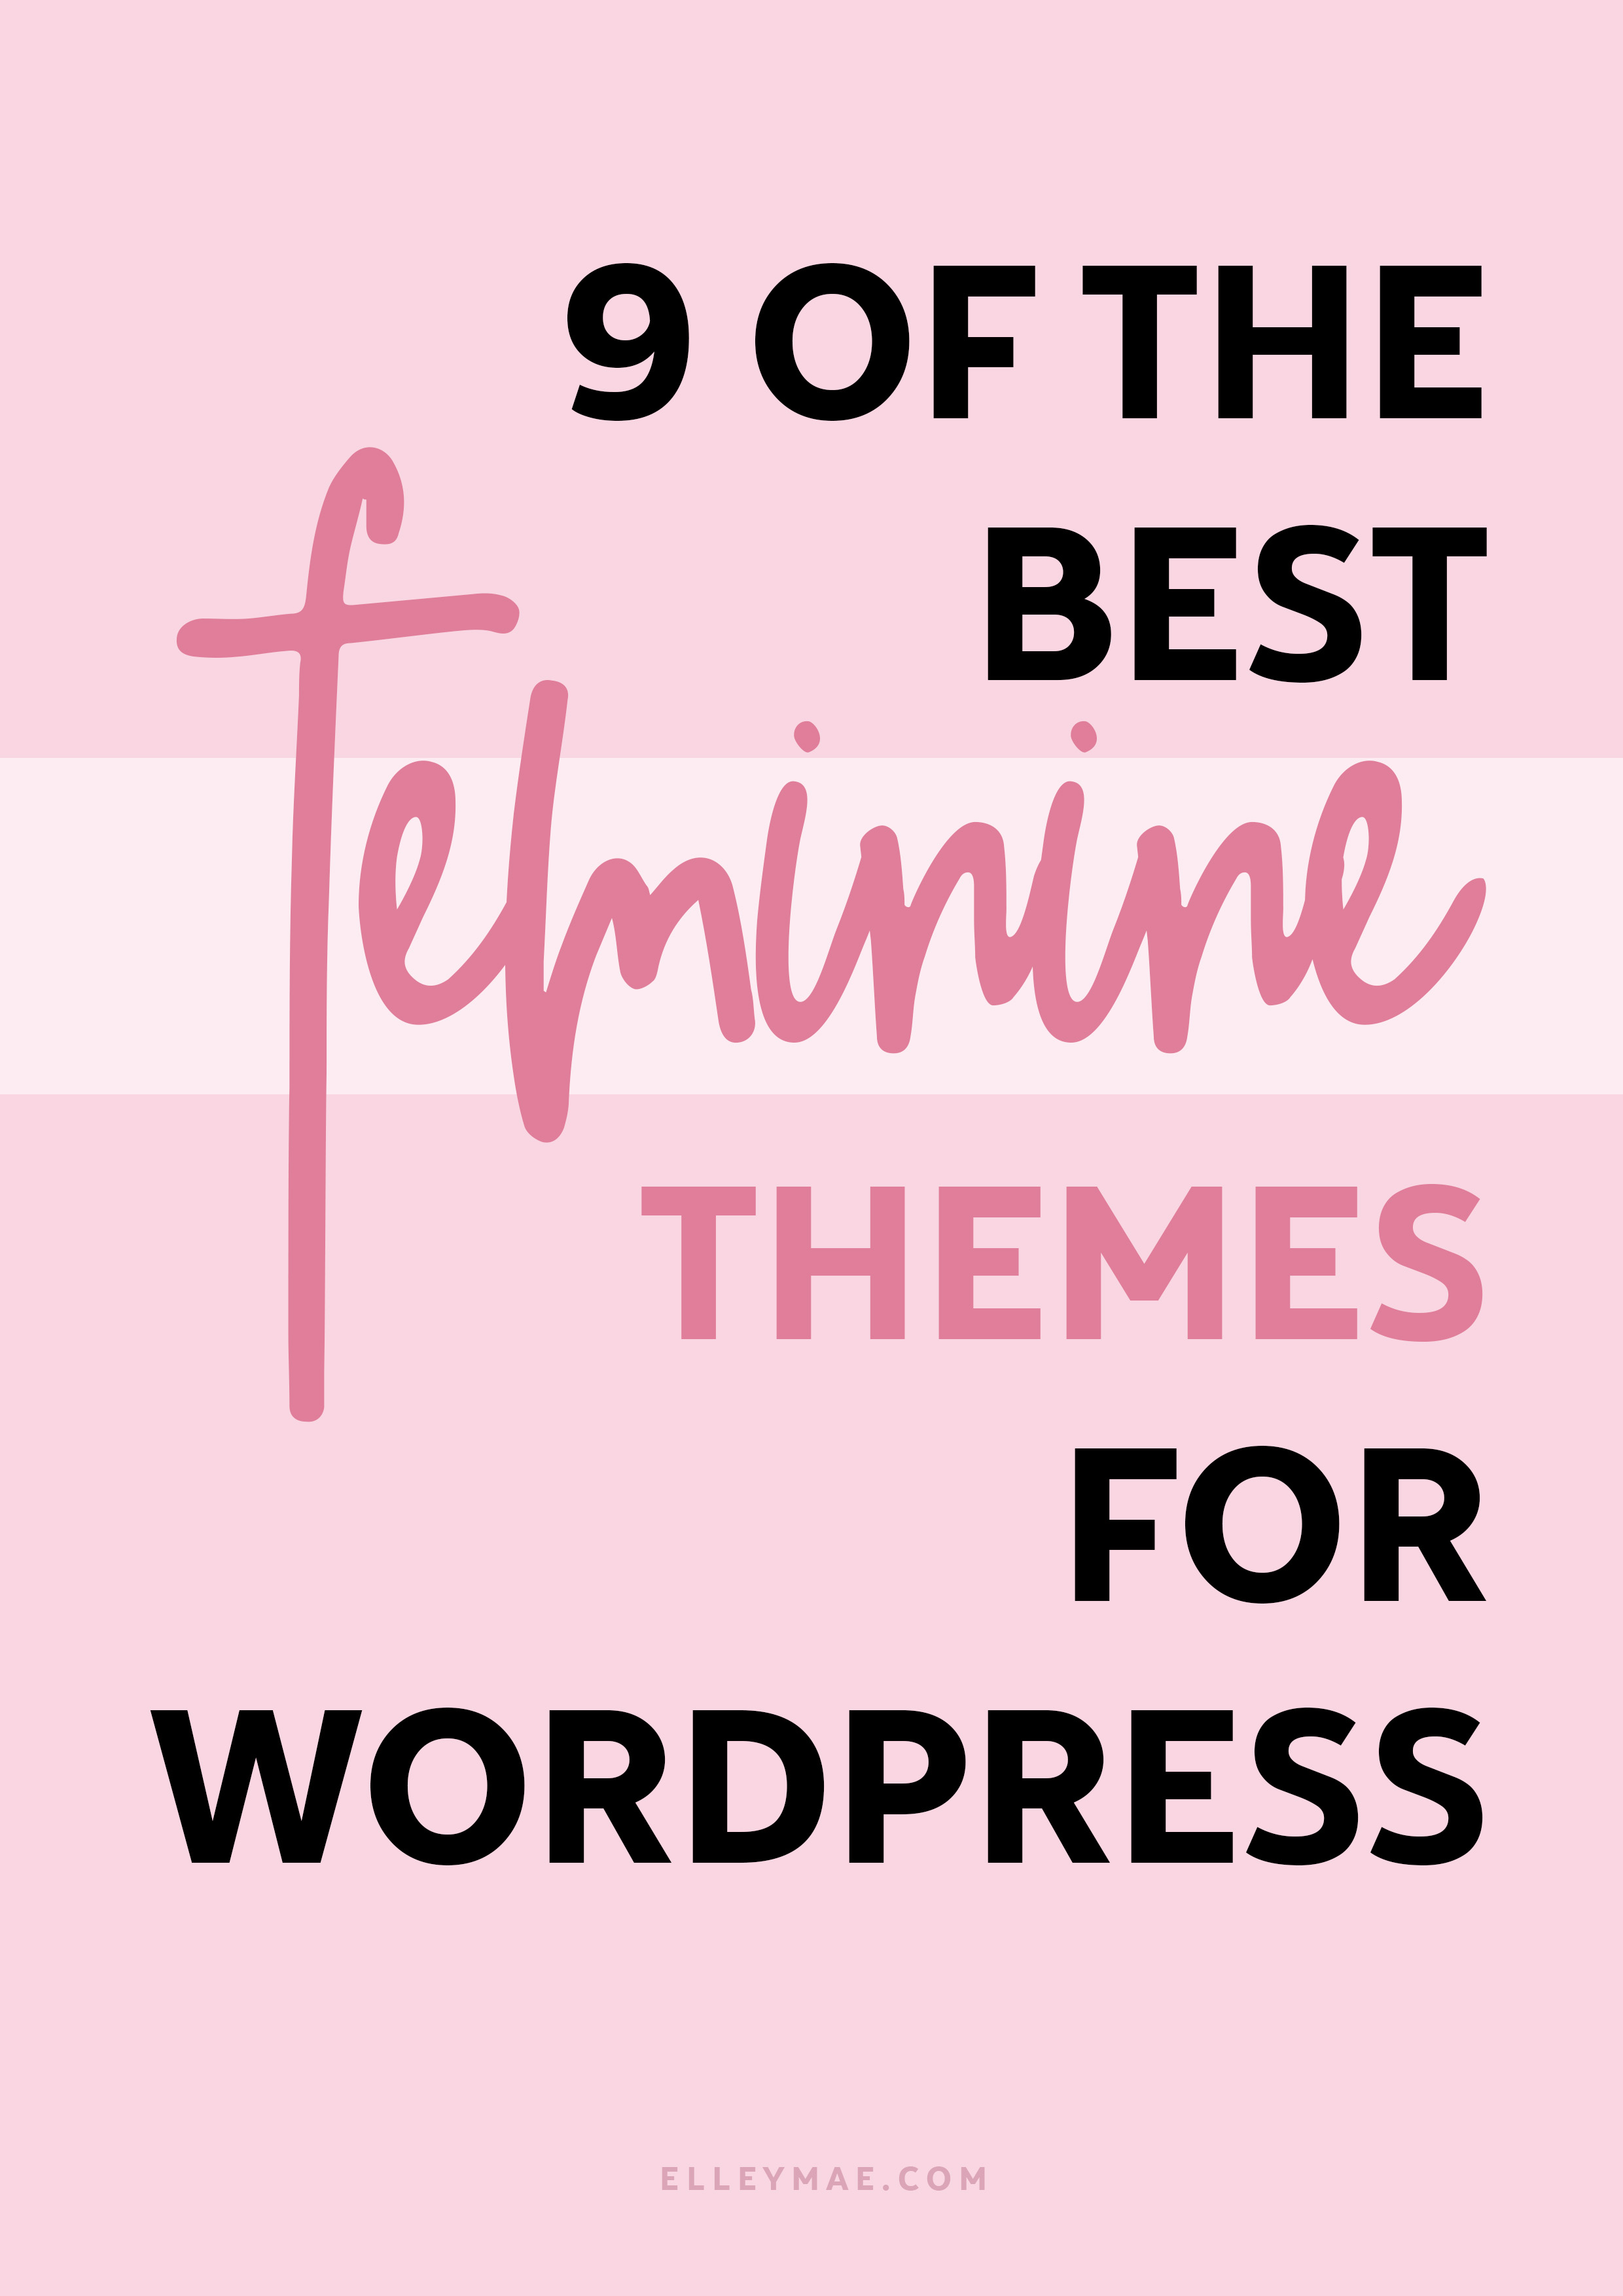 9 Of The Most Beautiful Feminine WordPress Themes   There's nothing like a beautiful, well designed theme to spruce up your blog. Branding your blog is one of the most important things you can do to boost your online presence, gain followers, increase sales & skyrocket your growth! Check out these 9 beautiful feminine wordpress themes today!   Learn more about blog design at ElleyMae.com